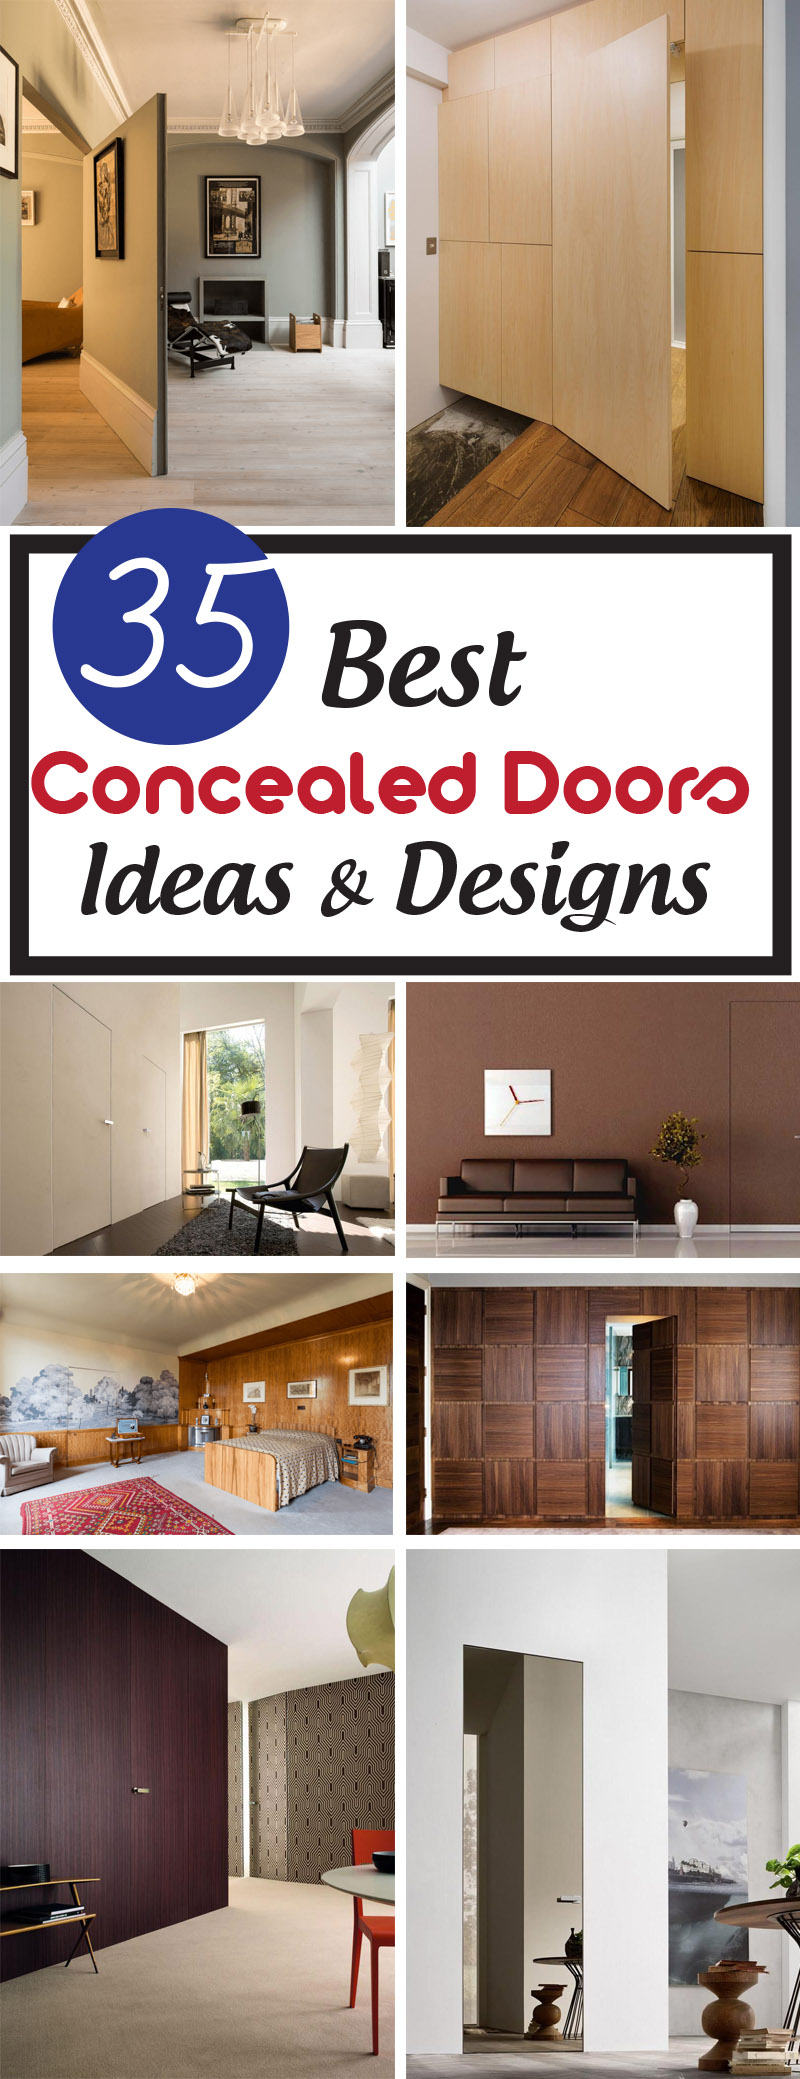 best concealed doors and ideas